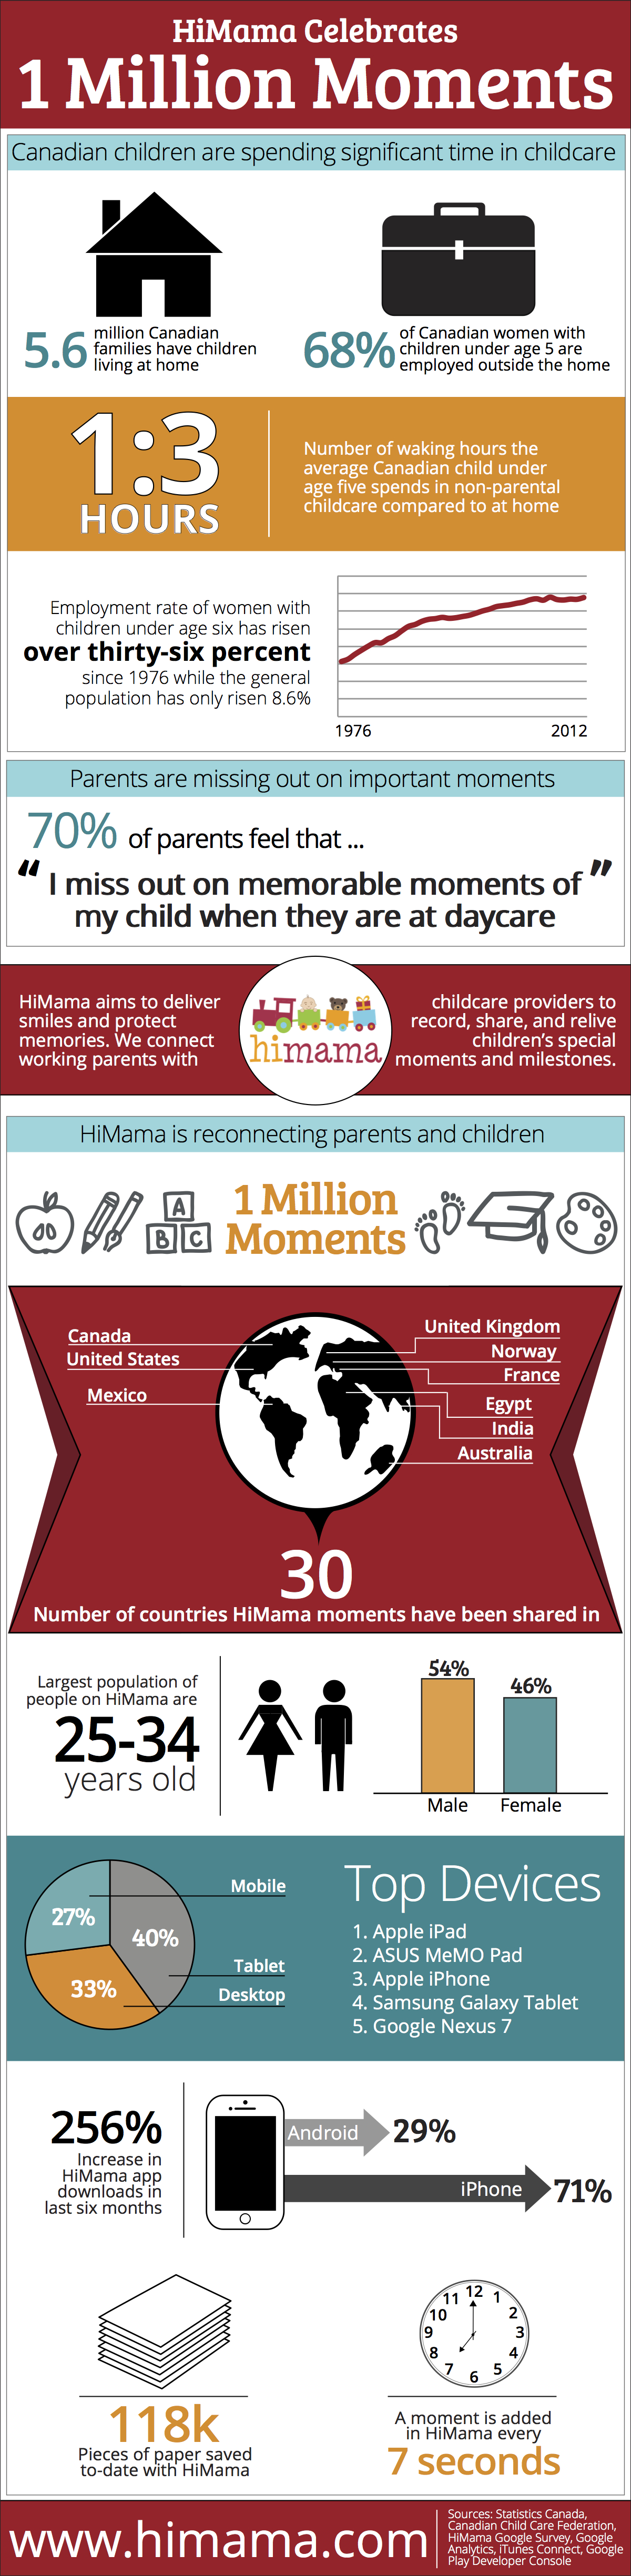 HiMama Child Care One Million Moments - Infographic